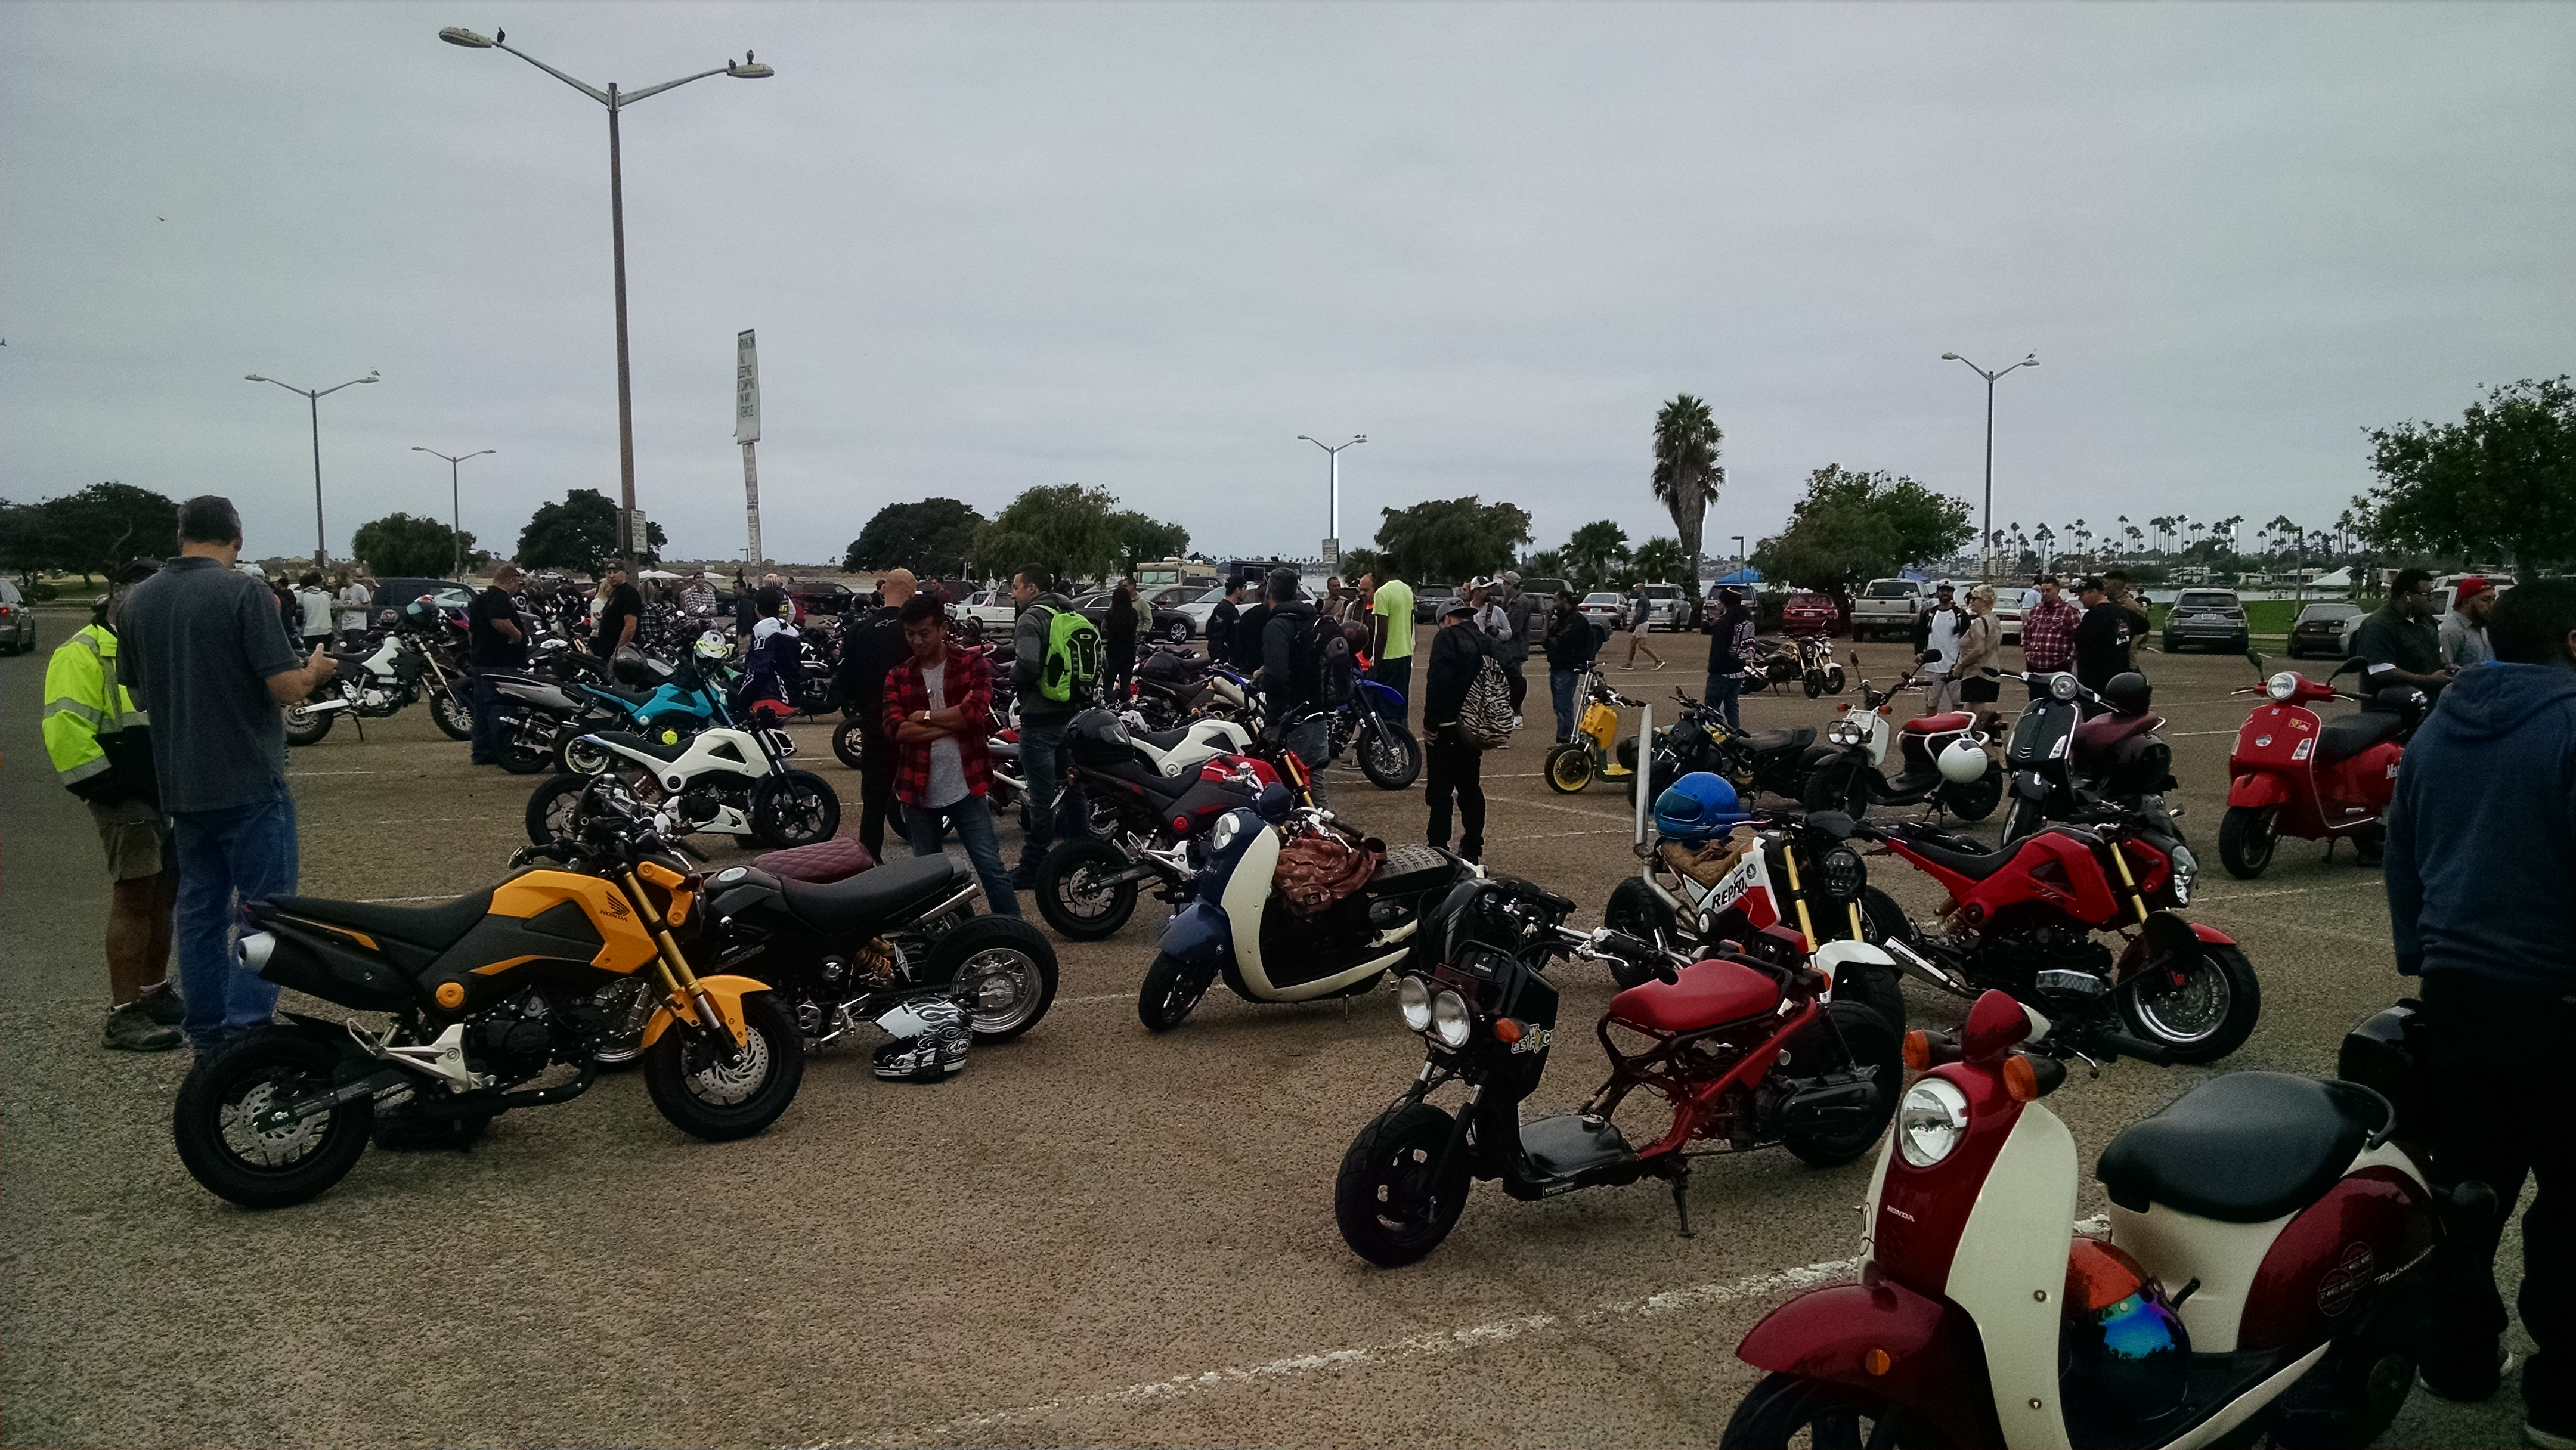 Went to a scooter/Grom Rally last Saturday called RiderzBlok-img_20160827_092749182.jpg